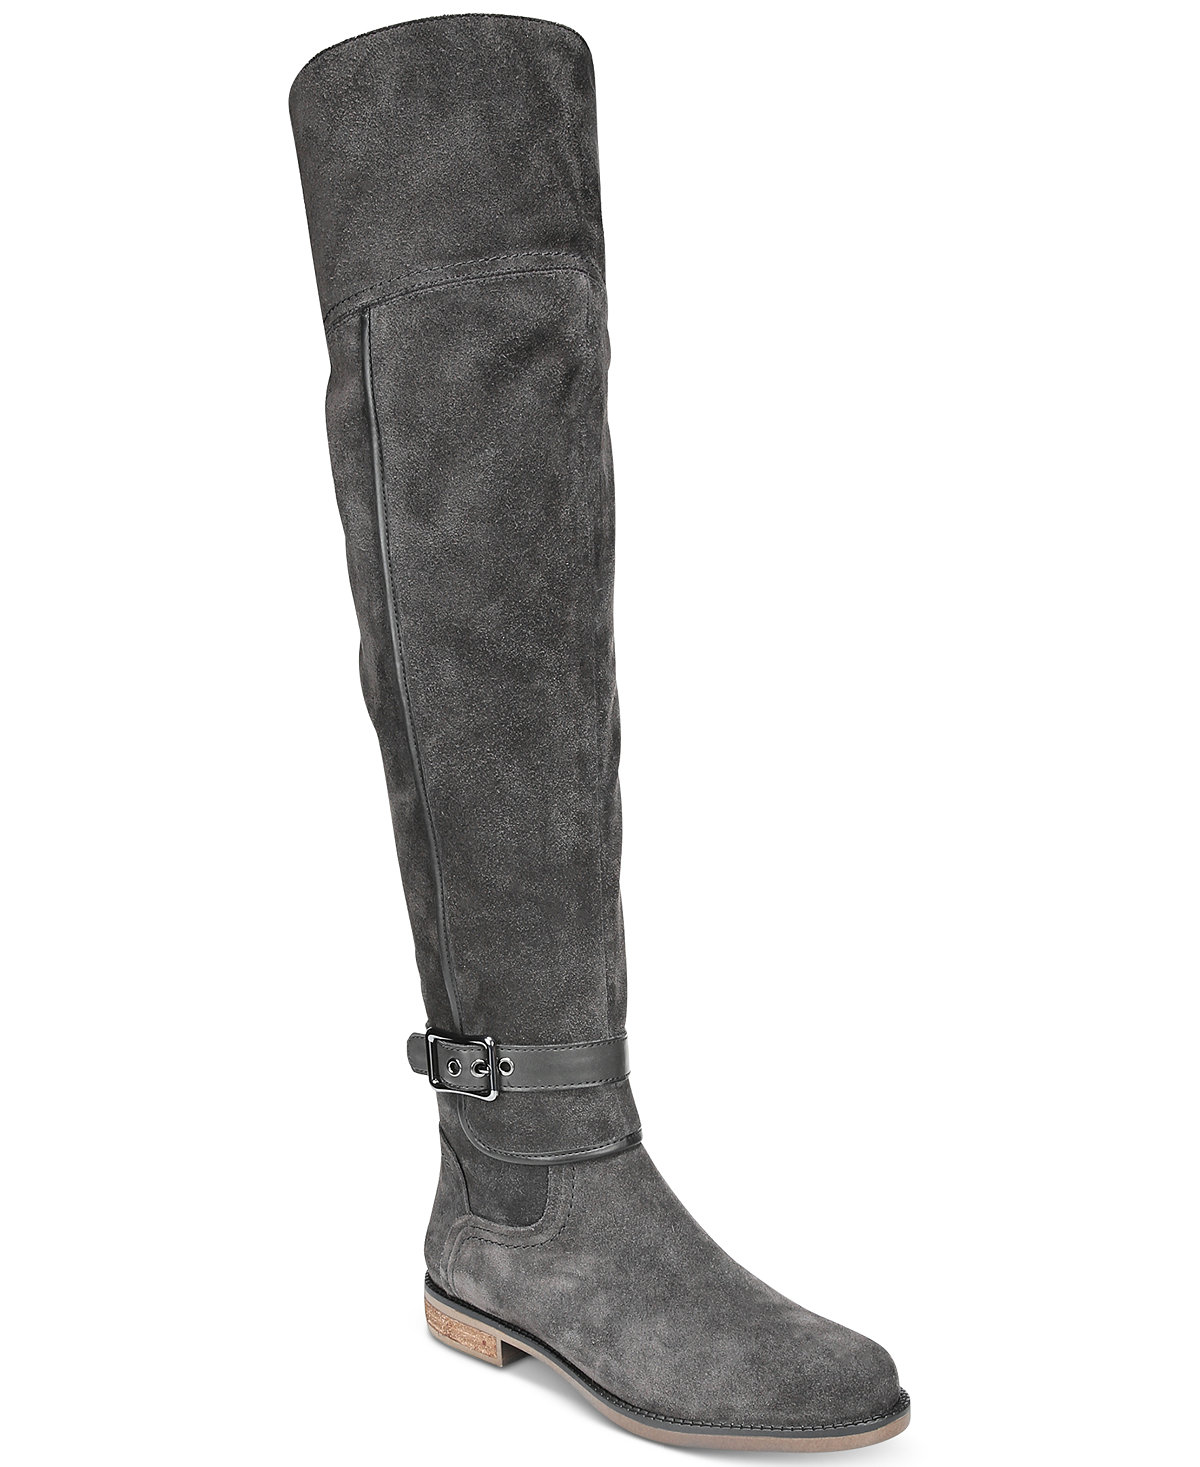 For The Love Of A Flat Wide Calf Boot 10 Fly Must Haves